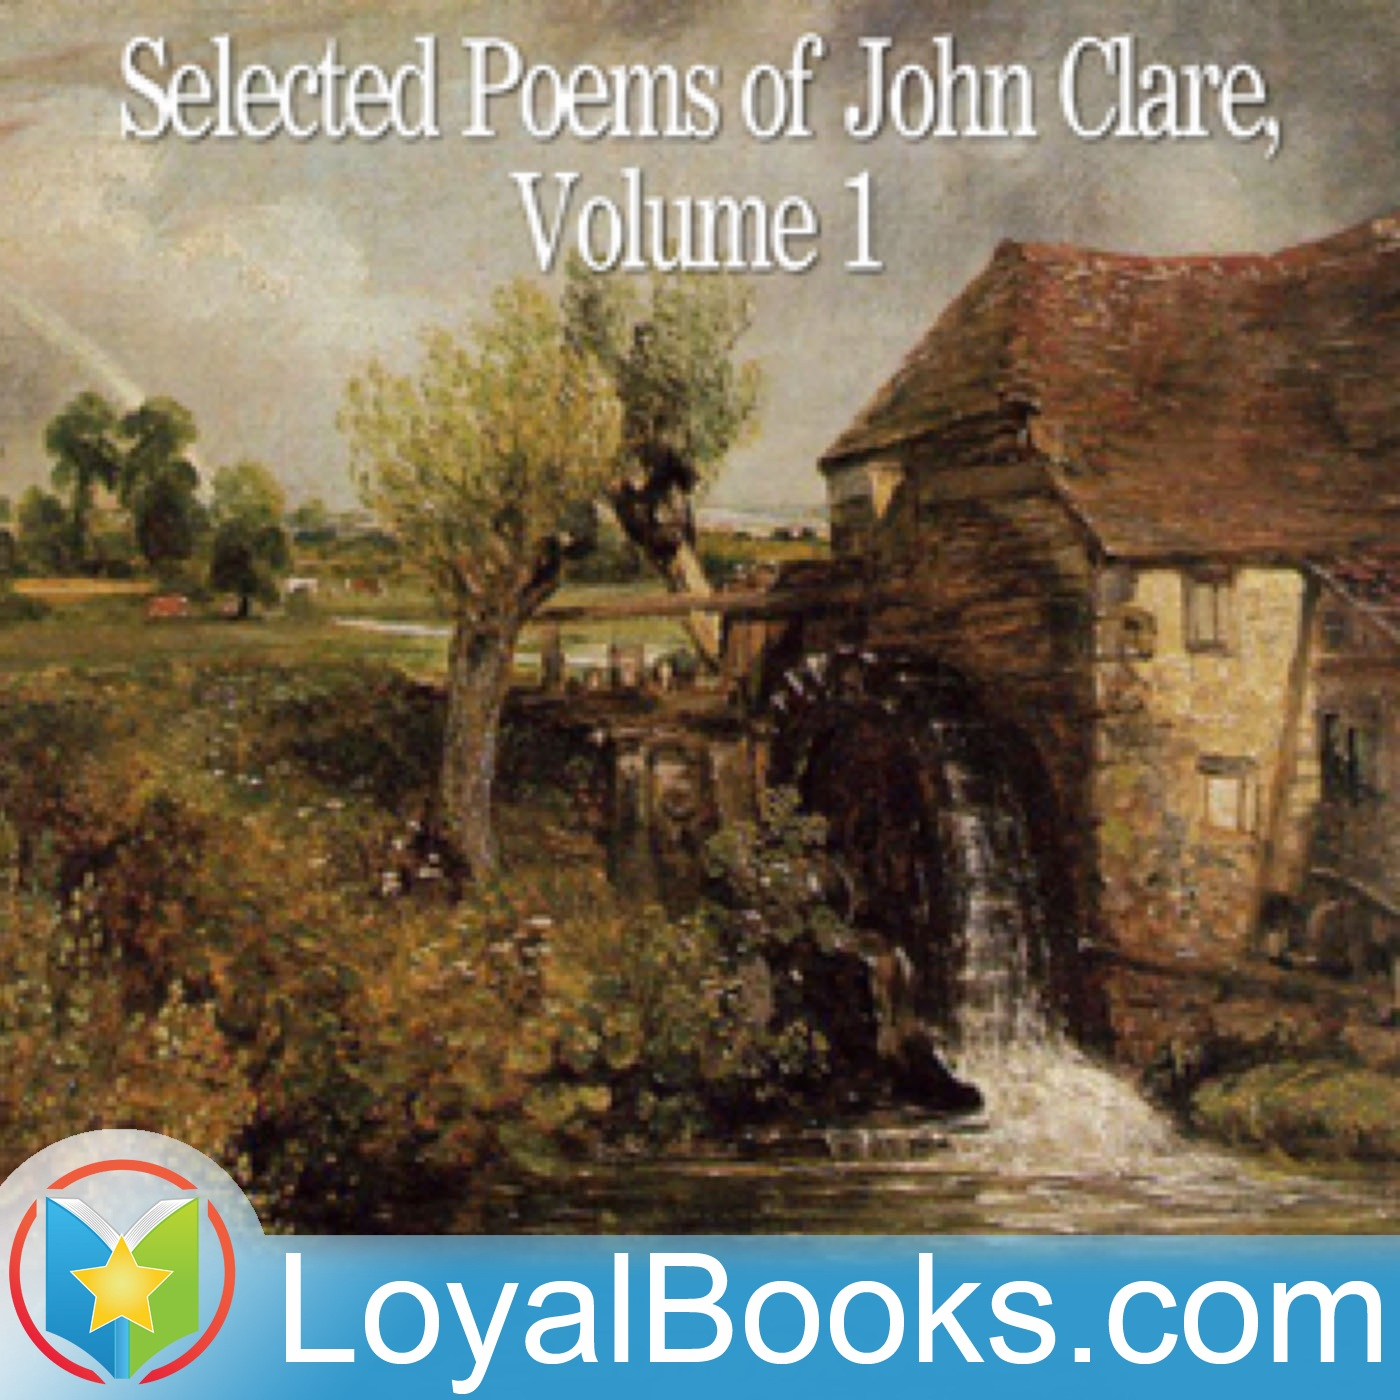 <![CDATA[Selected Poems of John Clare by John Clare]]>